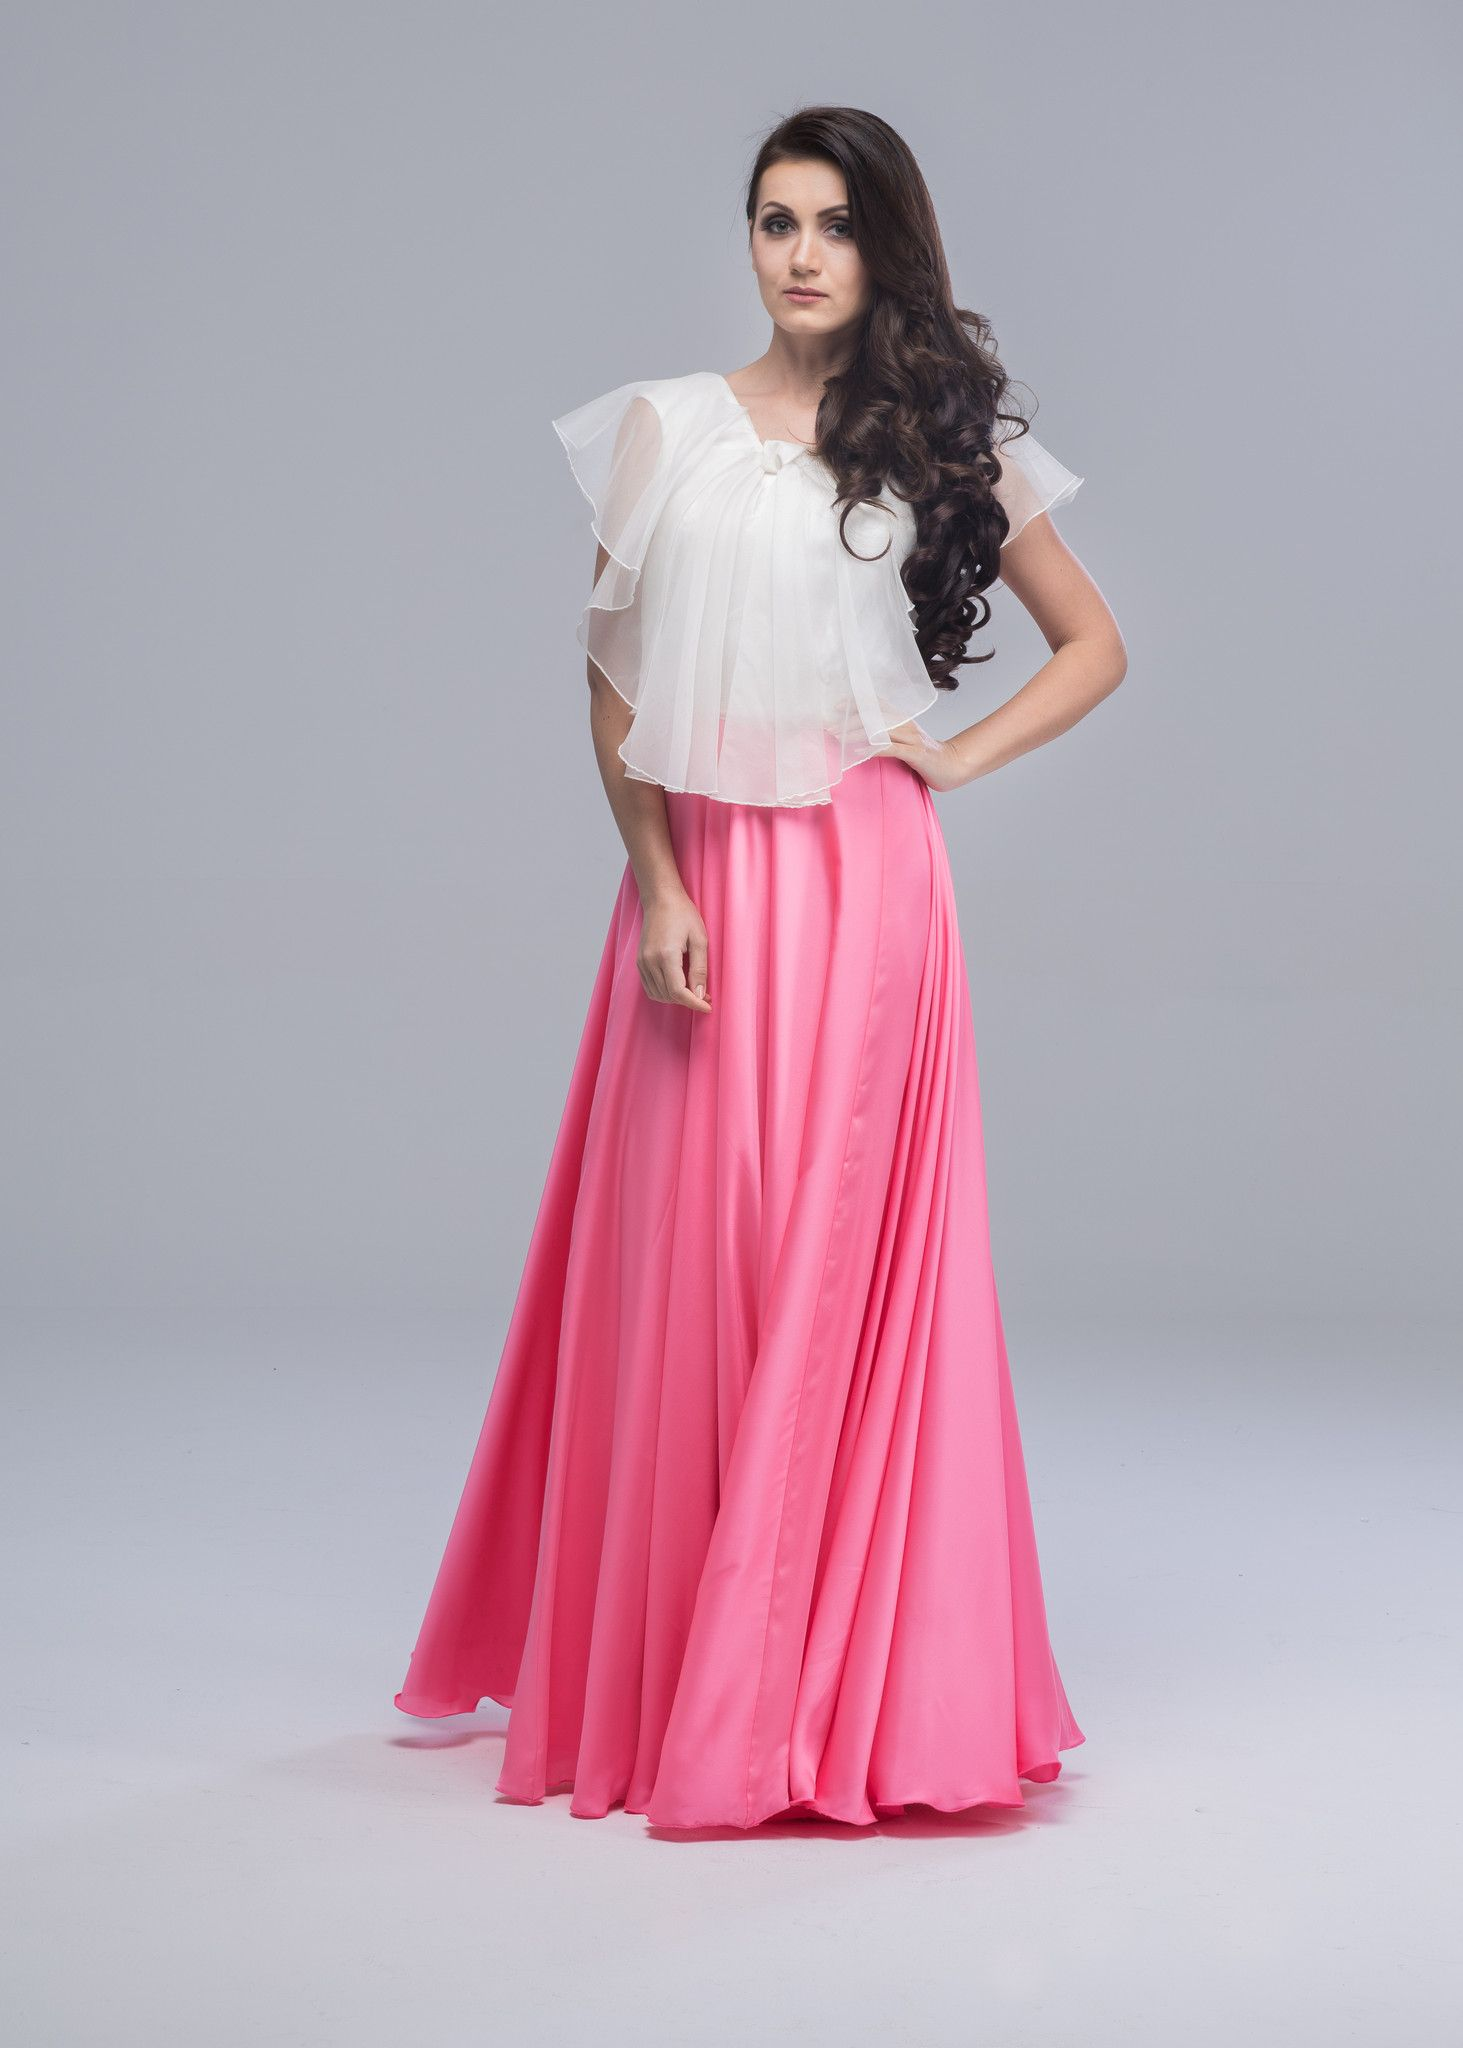 Short-Silk Dress with Organza-Body (Onion Pink) from the Neetu Store ...